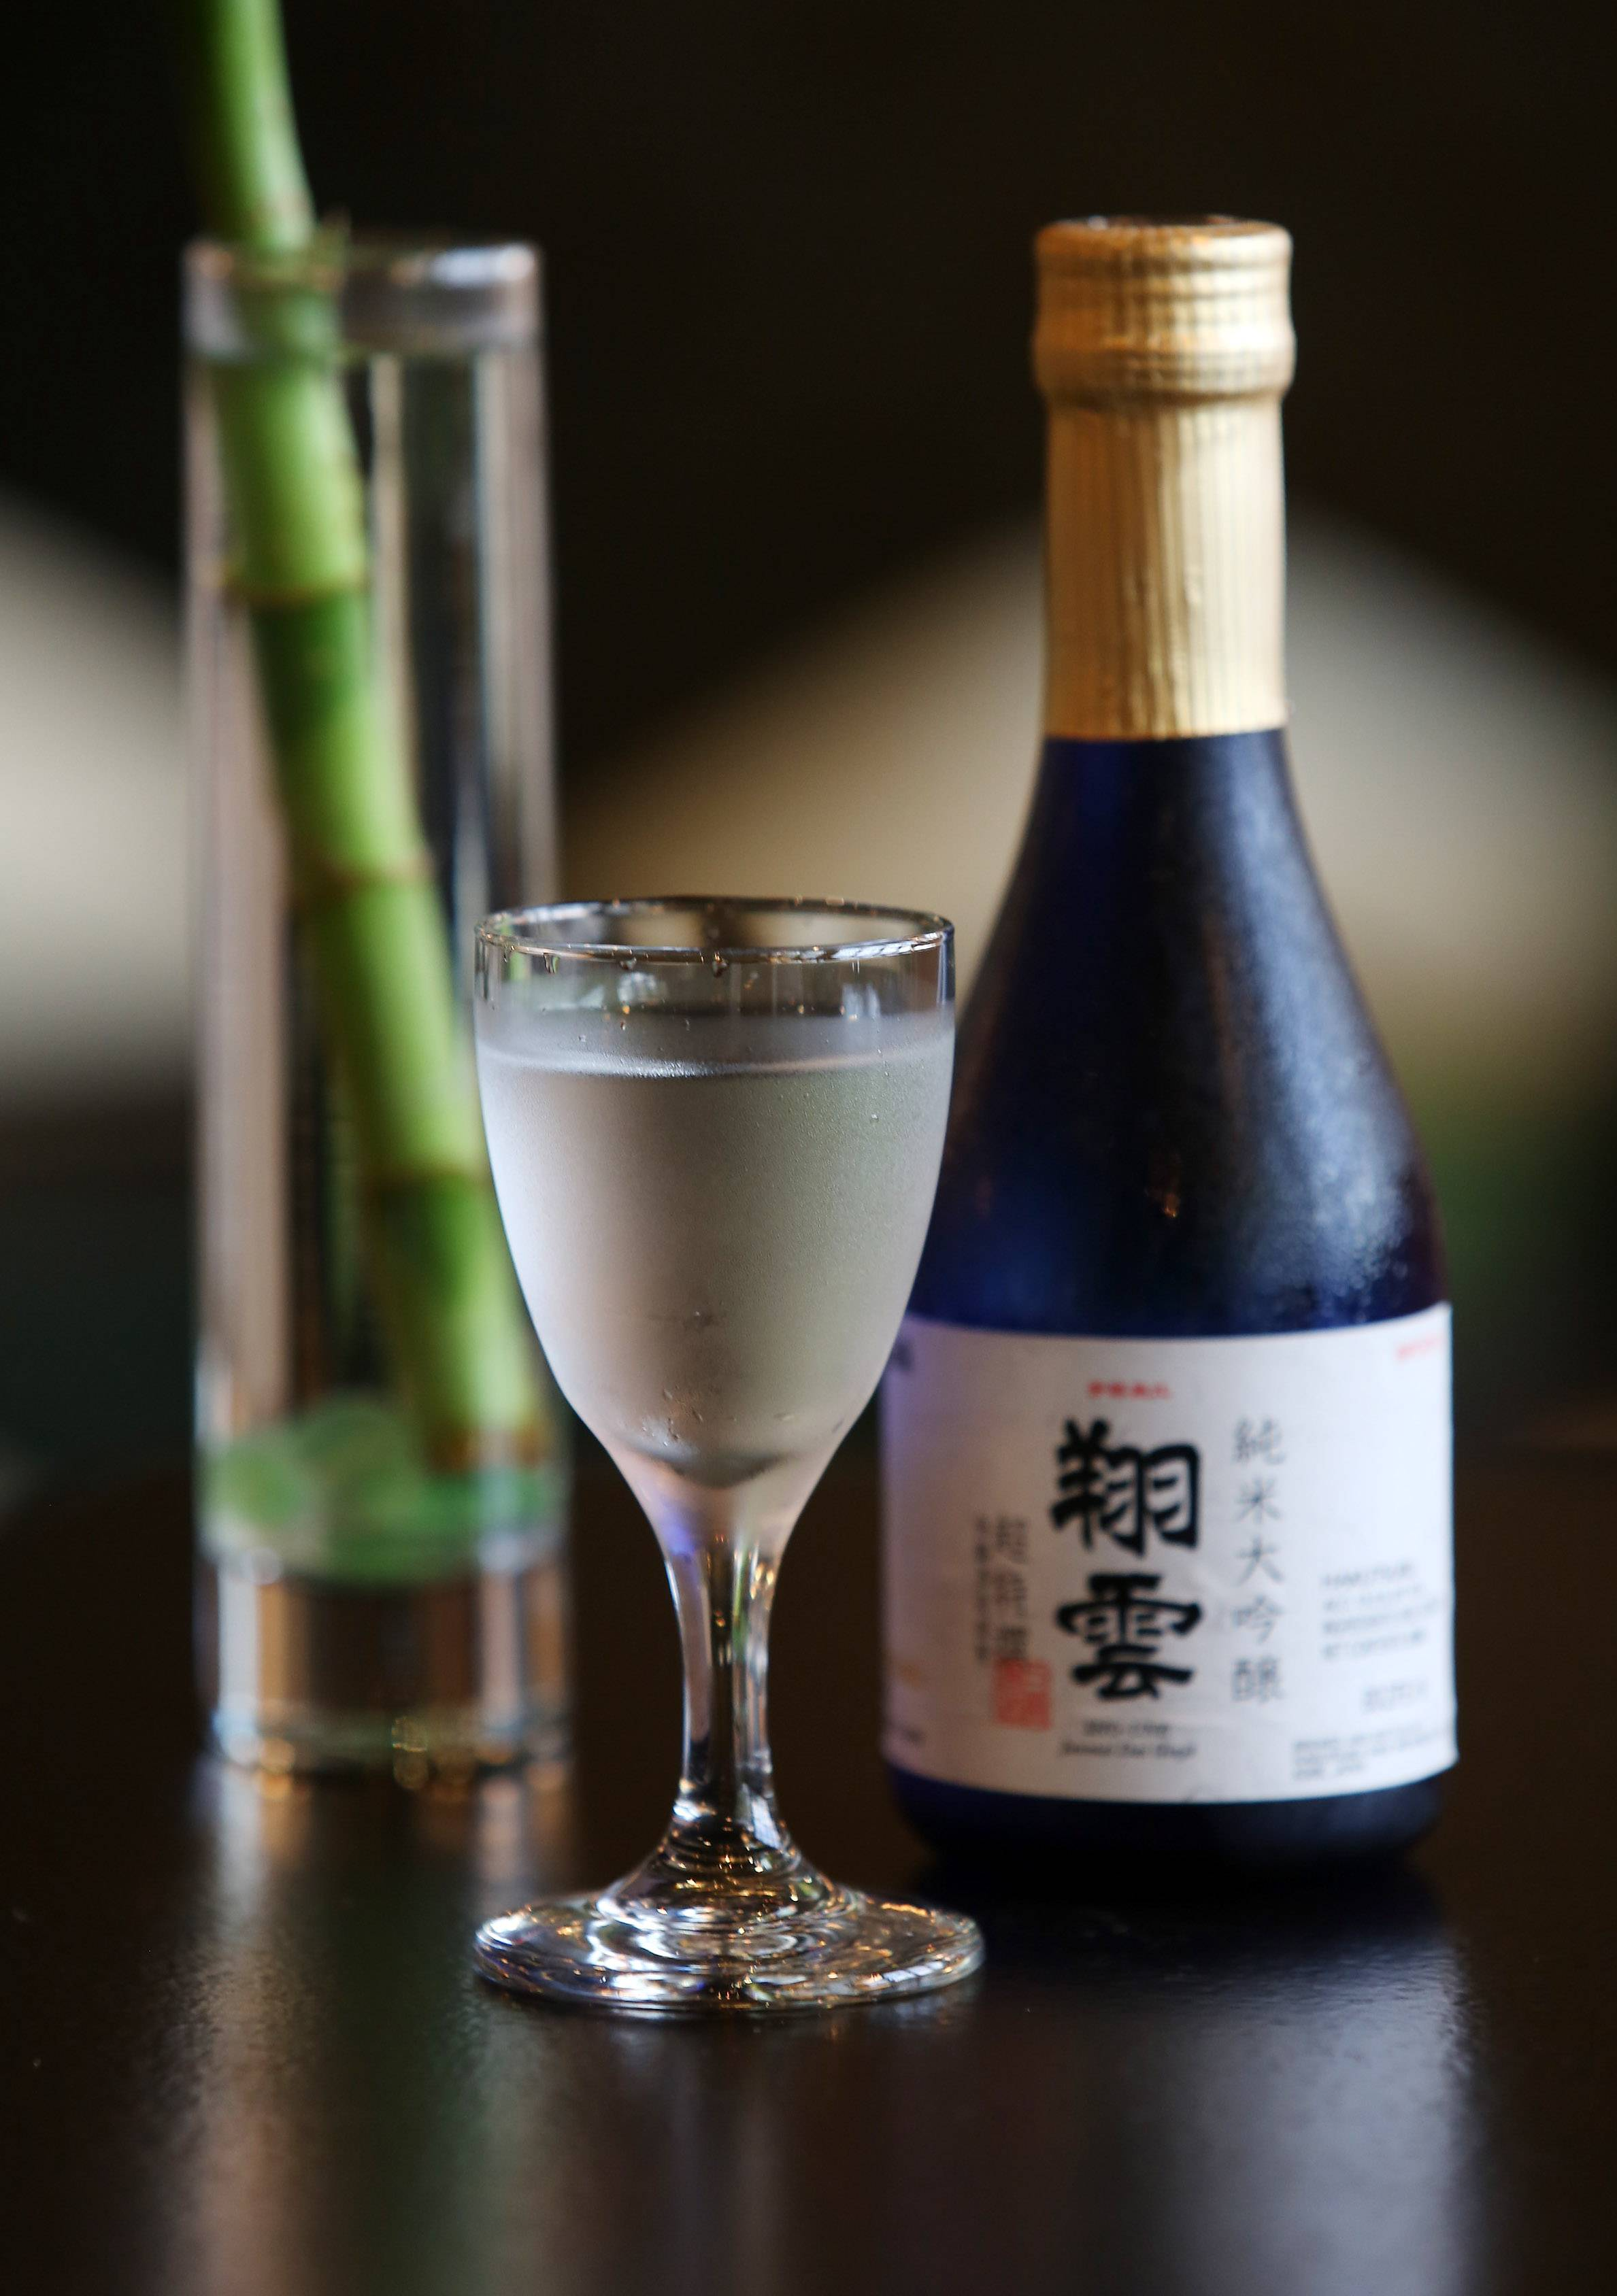 Junmai Dai Ginjo sake is available at Karma in Mundelein.